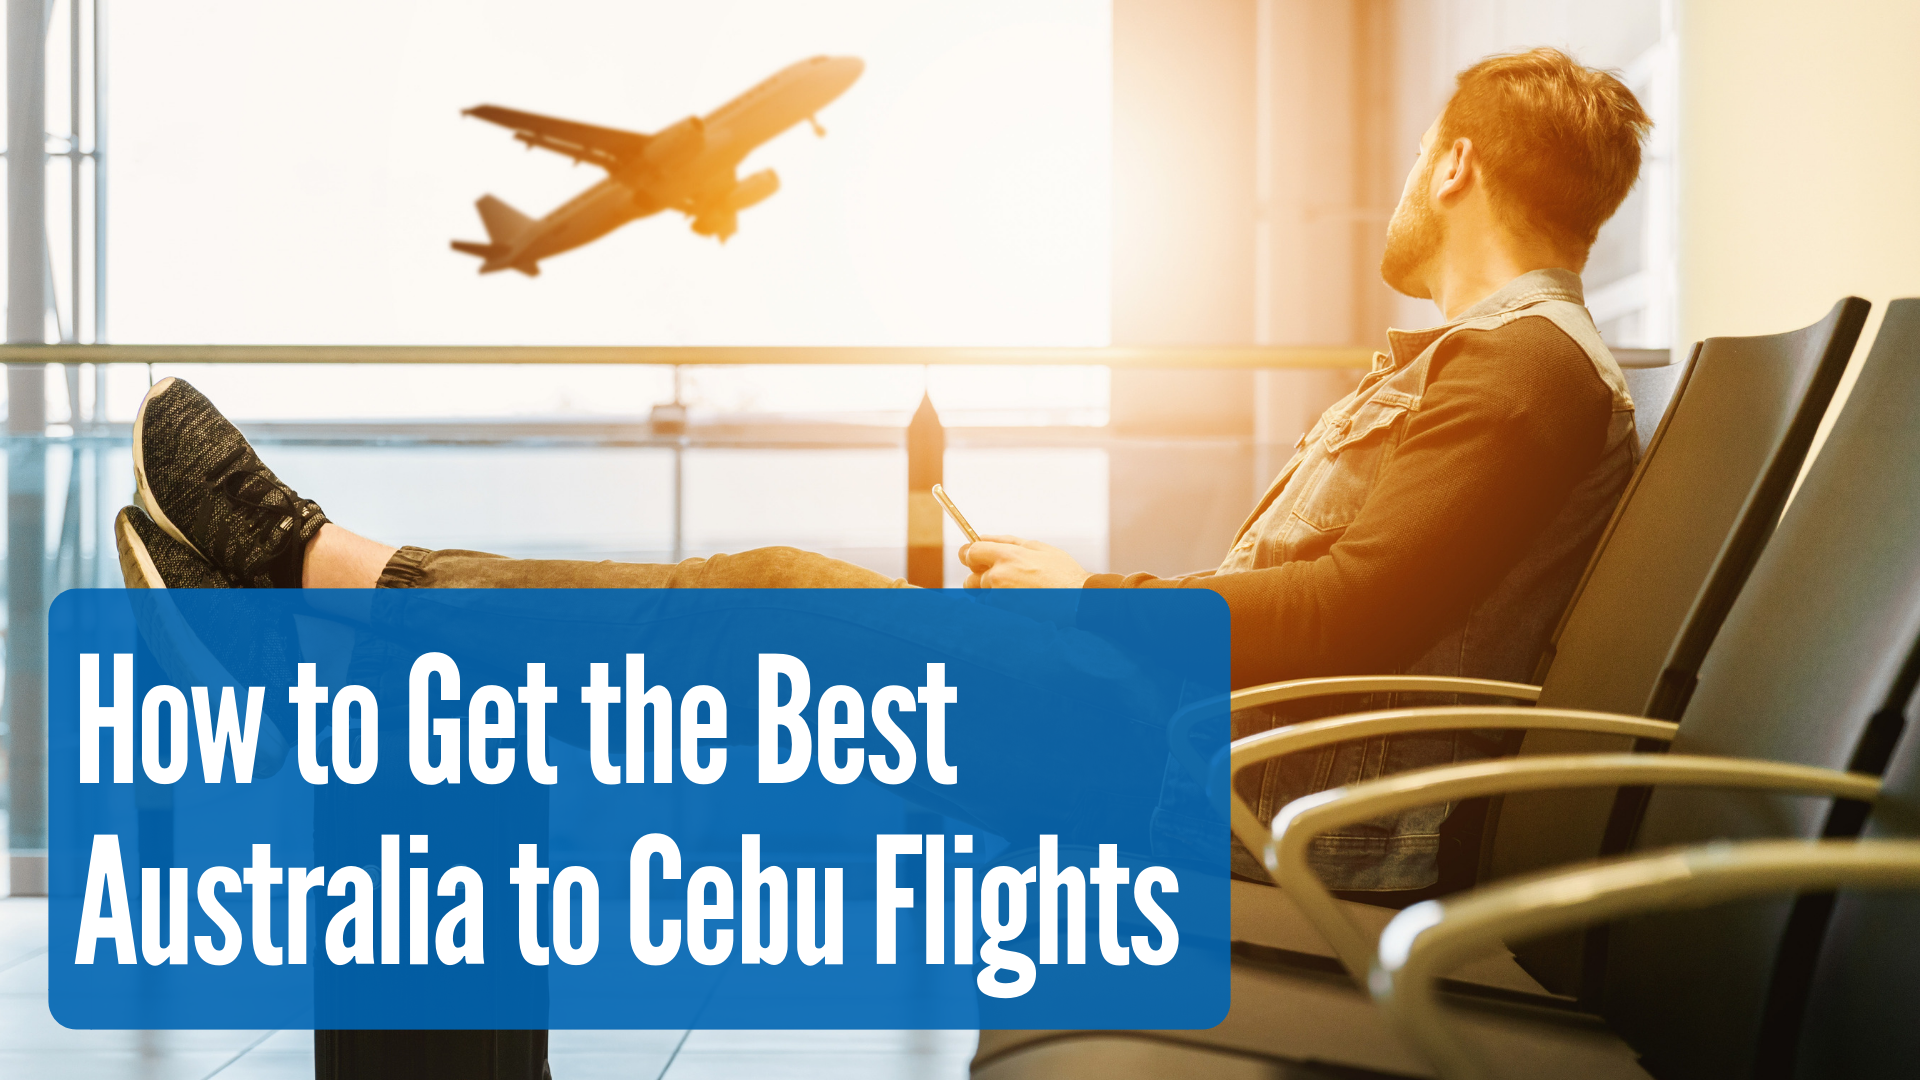 How to Get the Best Australia to Cebu Flights